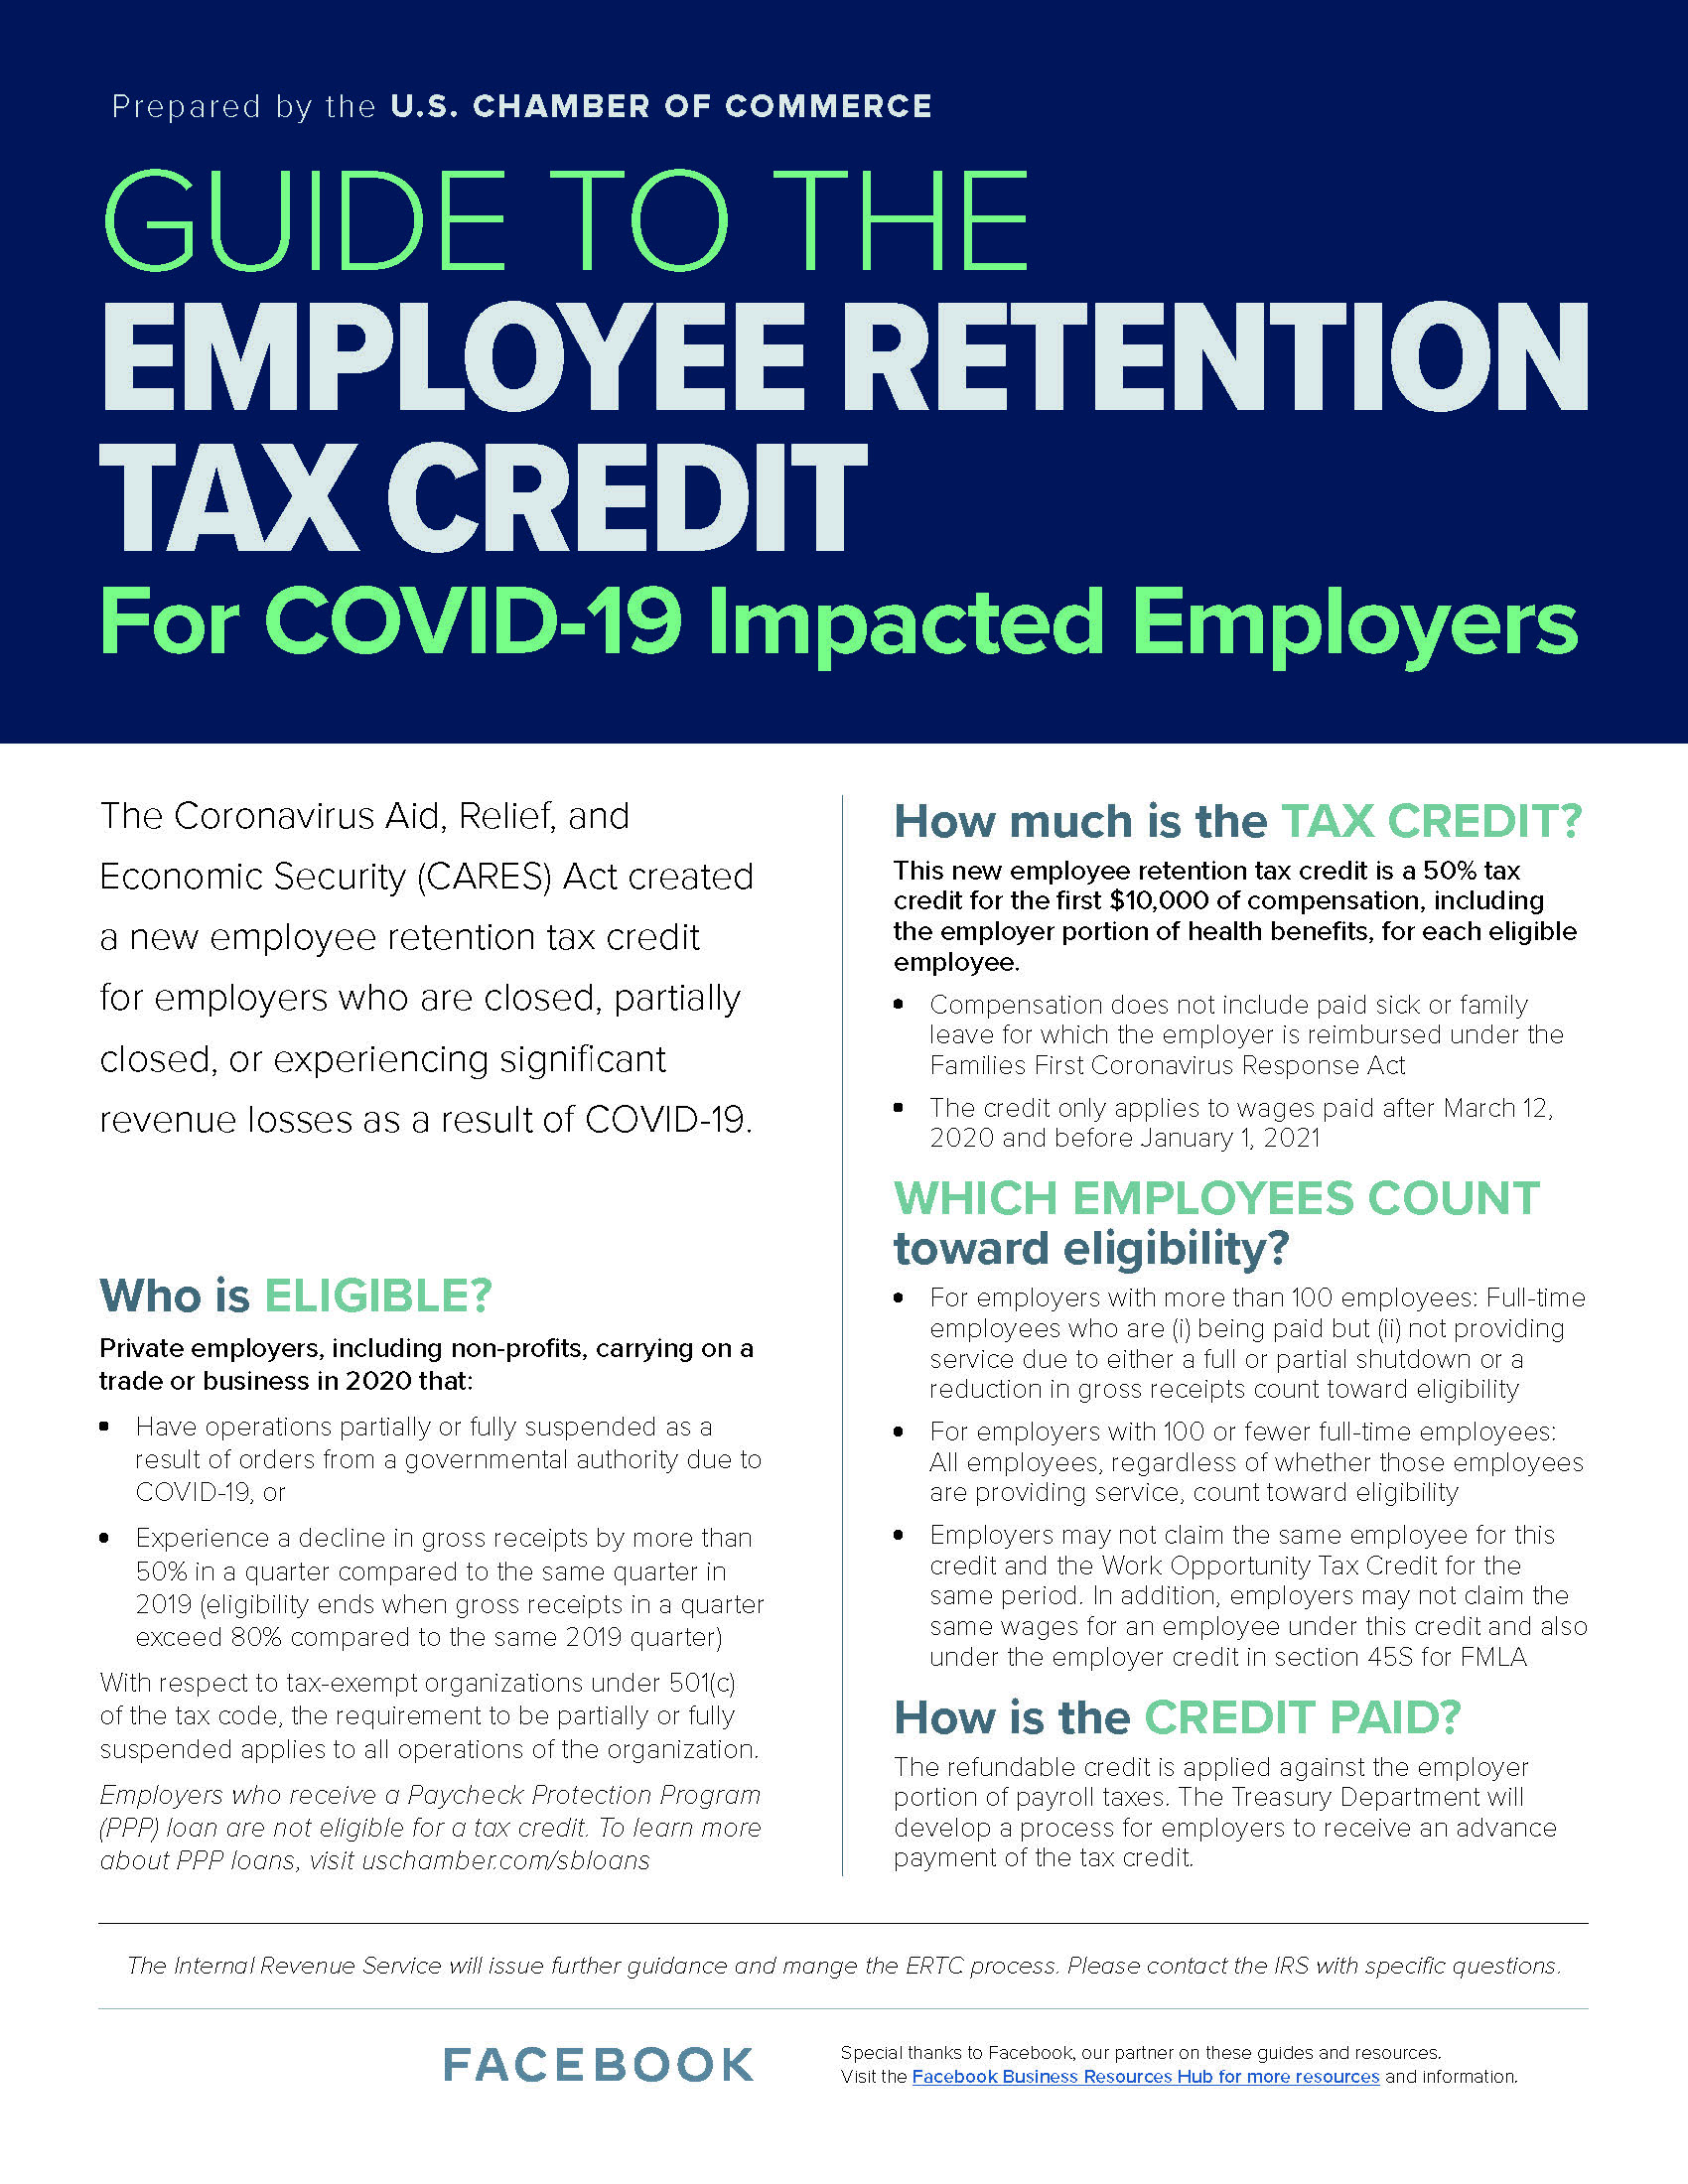 uscc_covid19_employee-retention-tax-credit